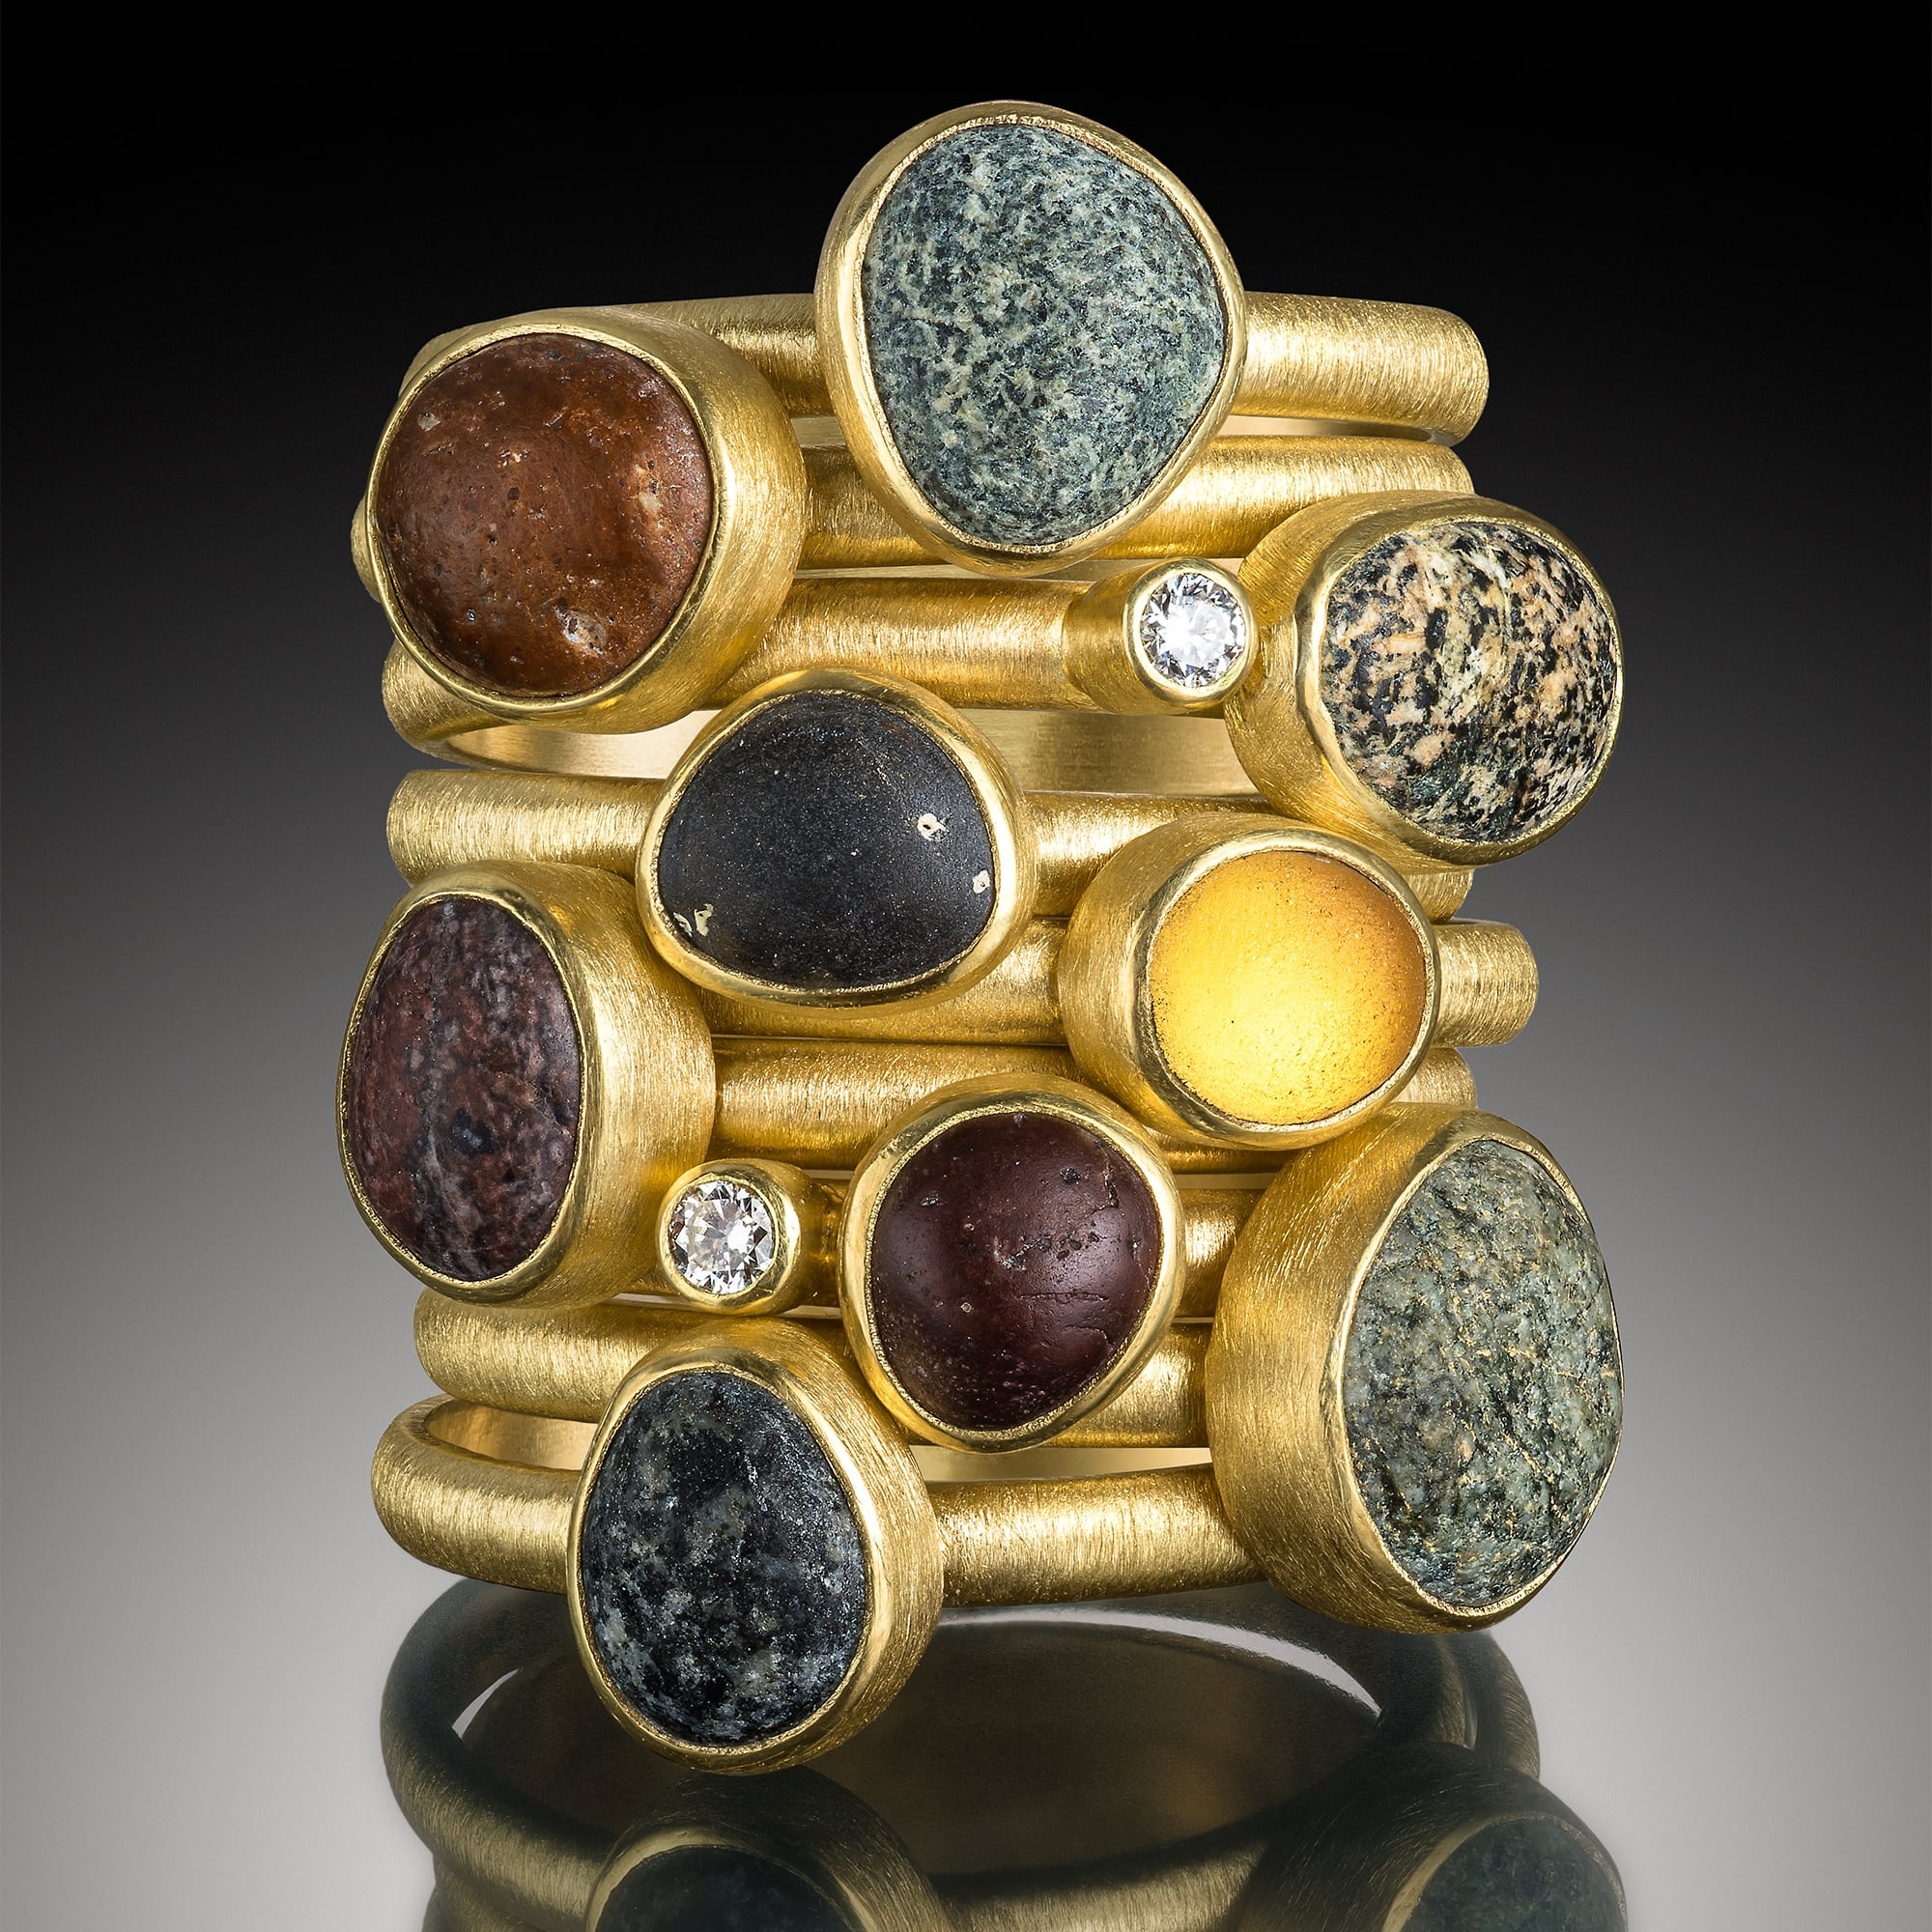 Berlian Arts Robert Diamante Jewelry Photography Web Design